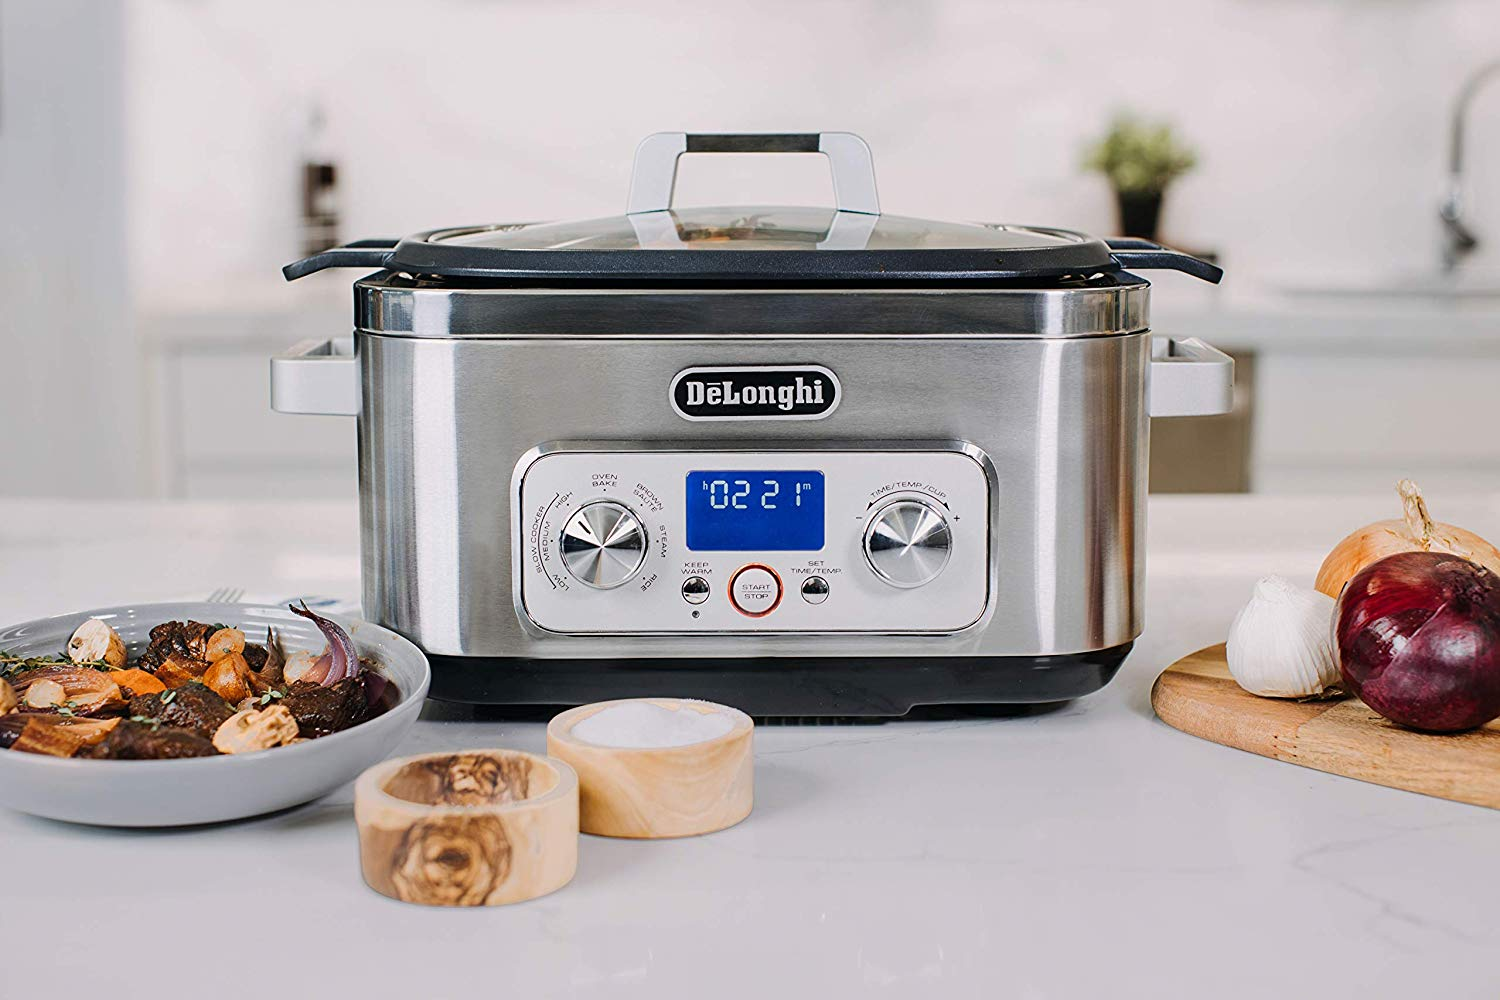 Best multi-cookers for the money